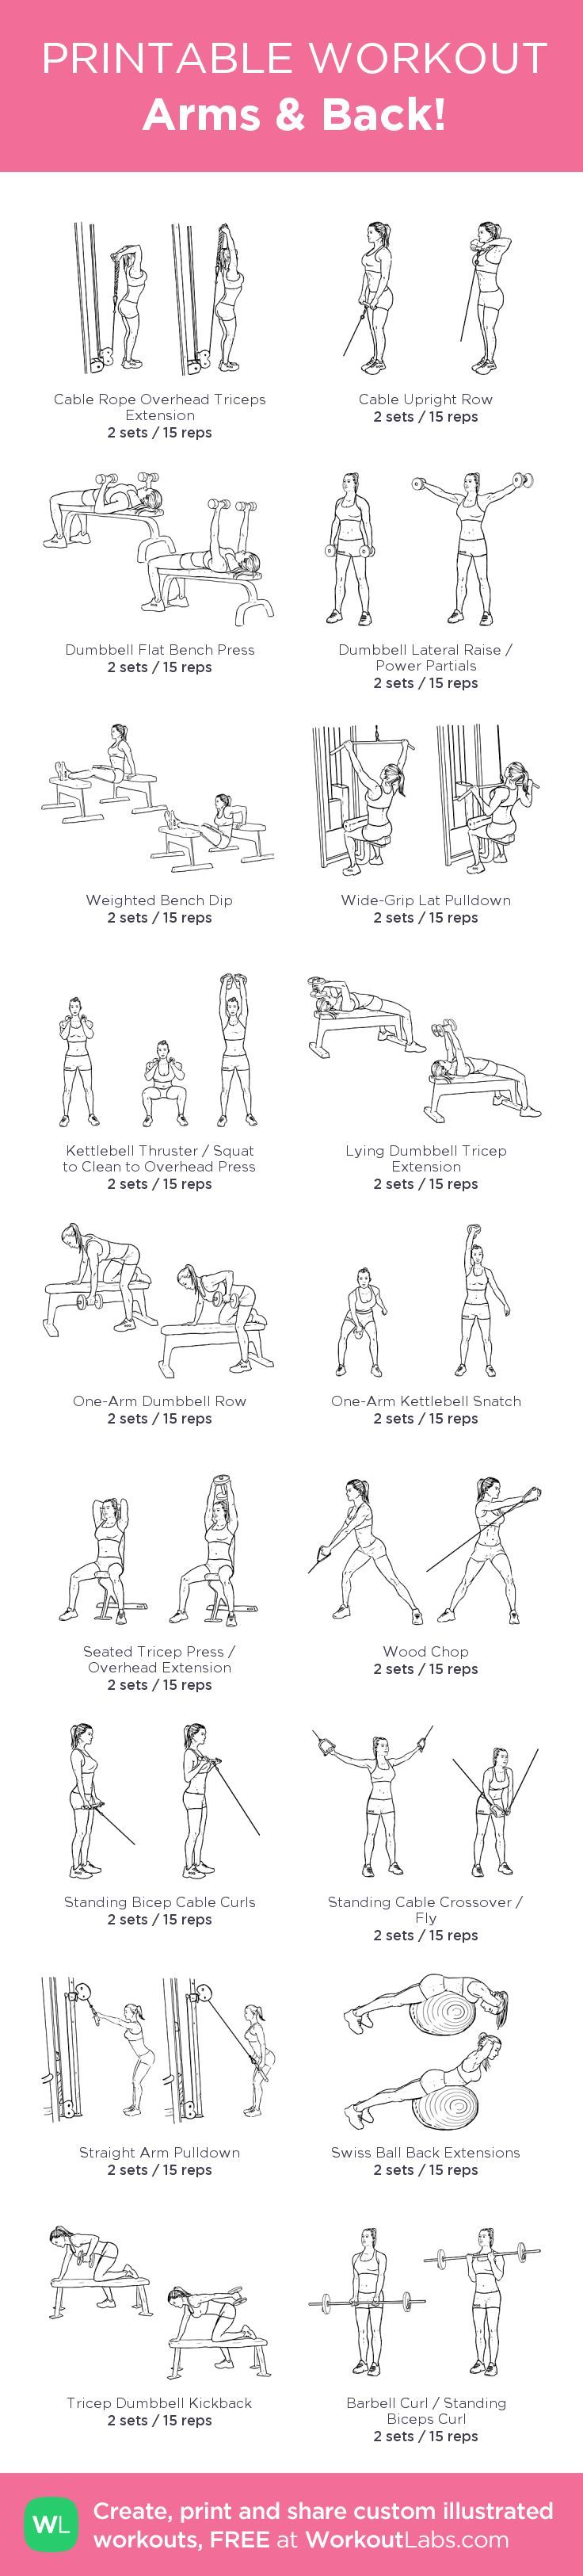 Arms Back! \u2013 my custom workout created at http://WorkoutLabs.com \u2022 Click through to download as printable PDF! #customworkout Comments comments